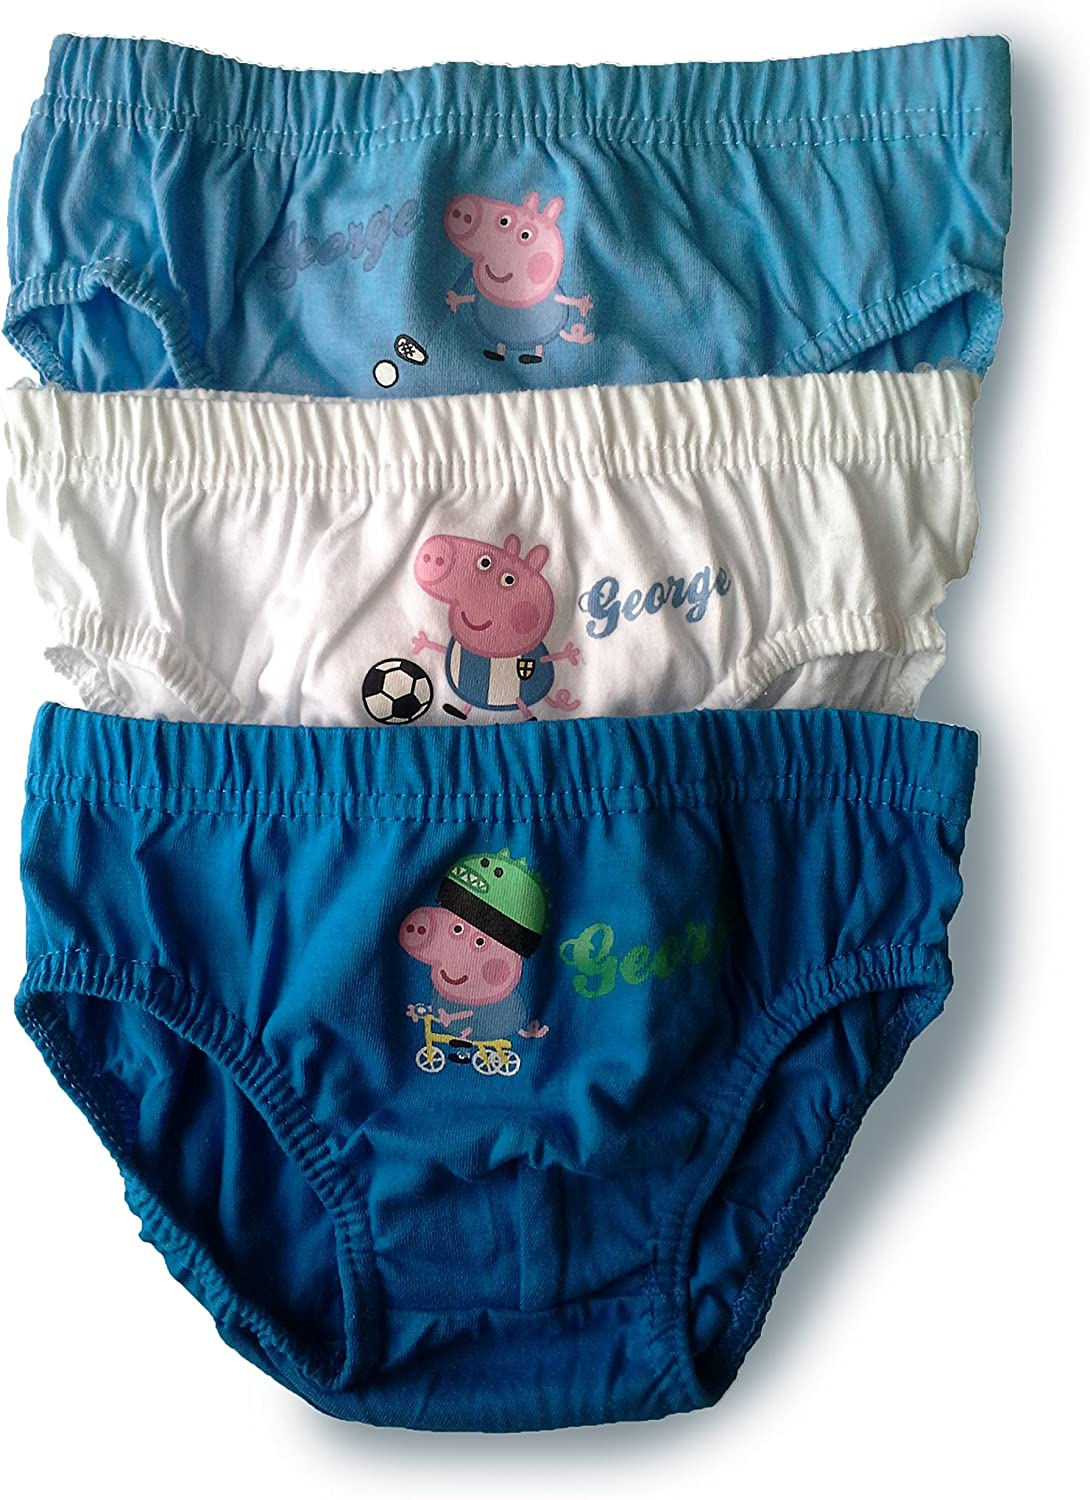 Official Licenced 100/% Cotton Boys Peppa Pig George Pants Briefs Underpants Underwear Slips 3 Pack